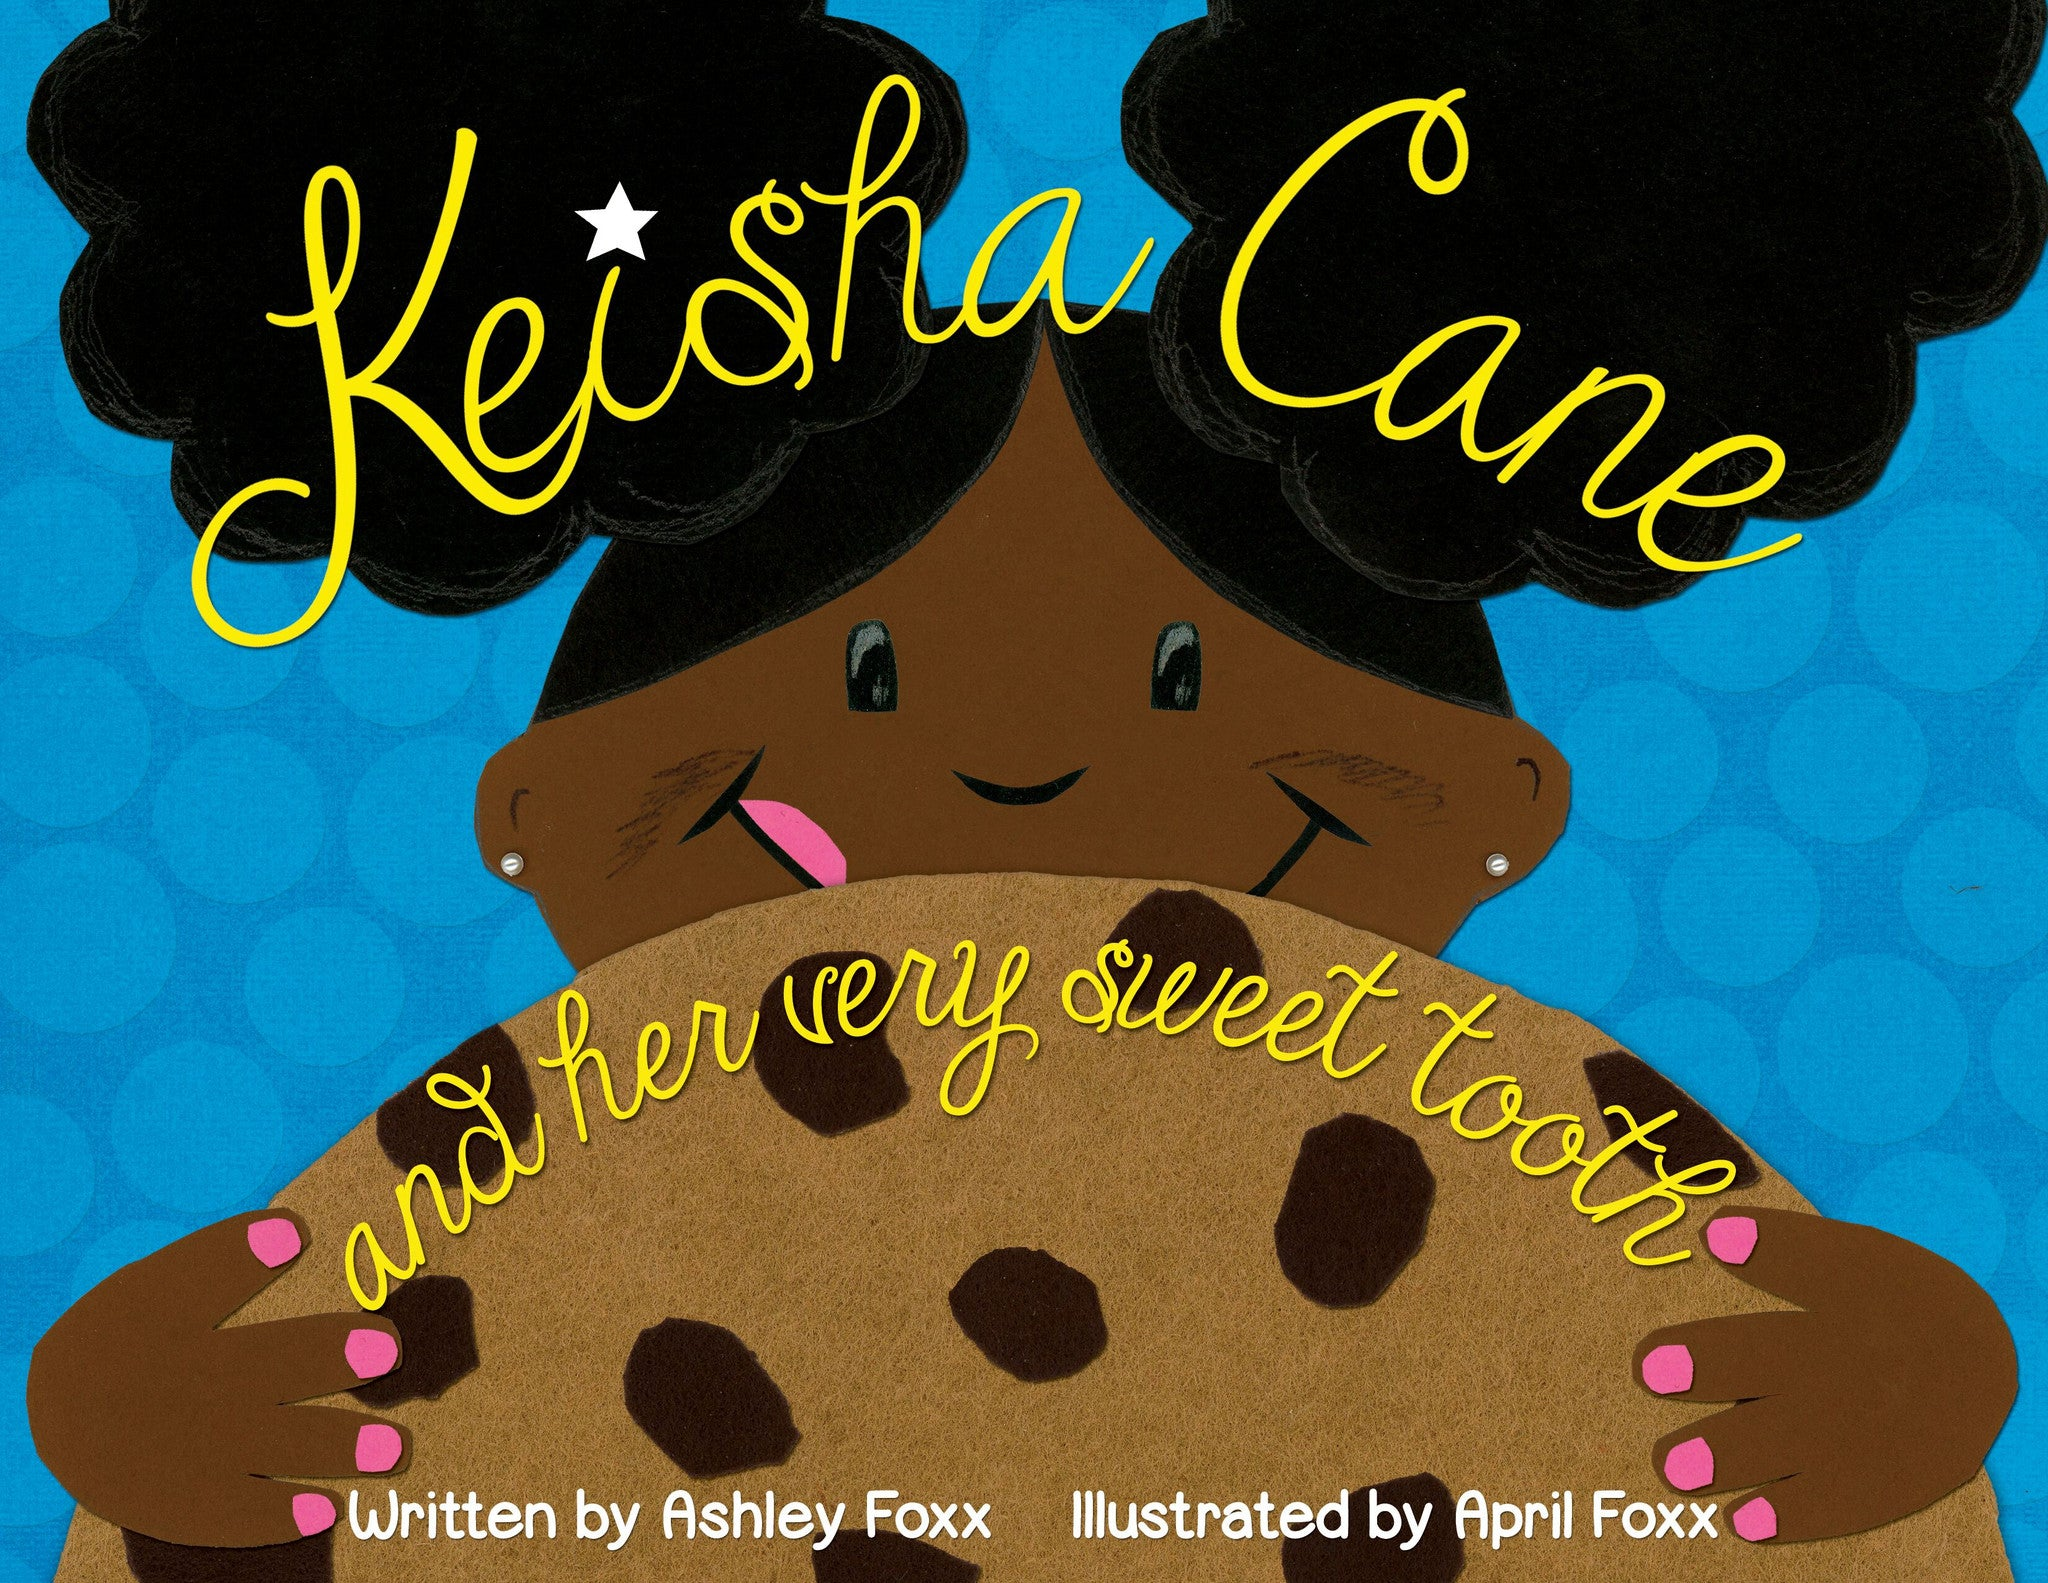 Keisha Cane and Her Very Sweet Tooth - Mini Paperback (6x4 in) - (Book only)